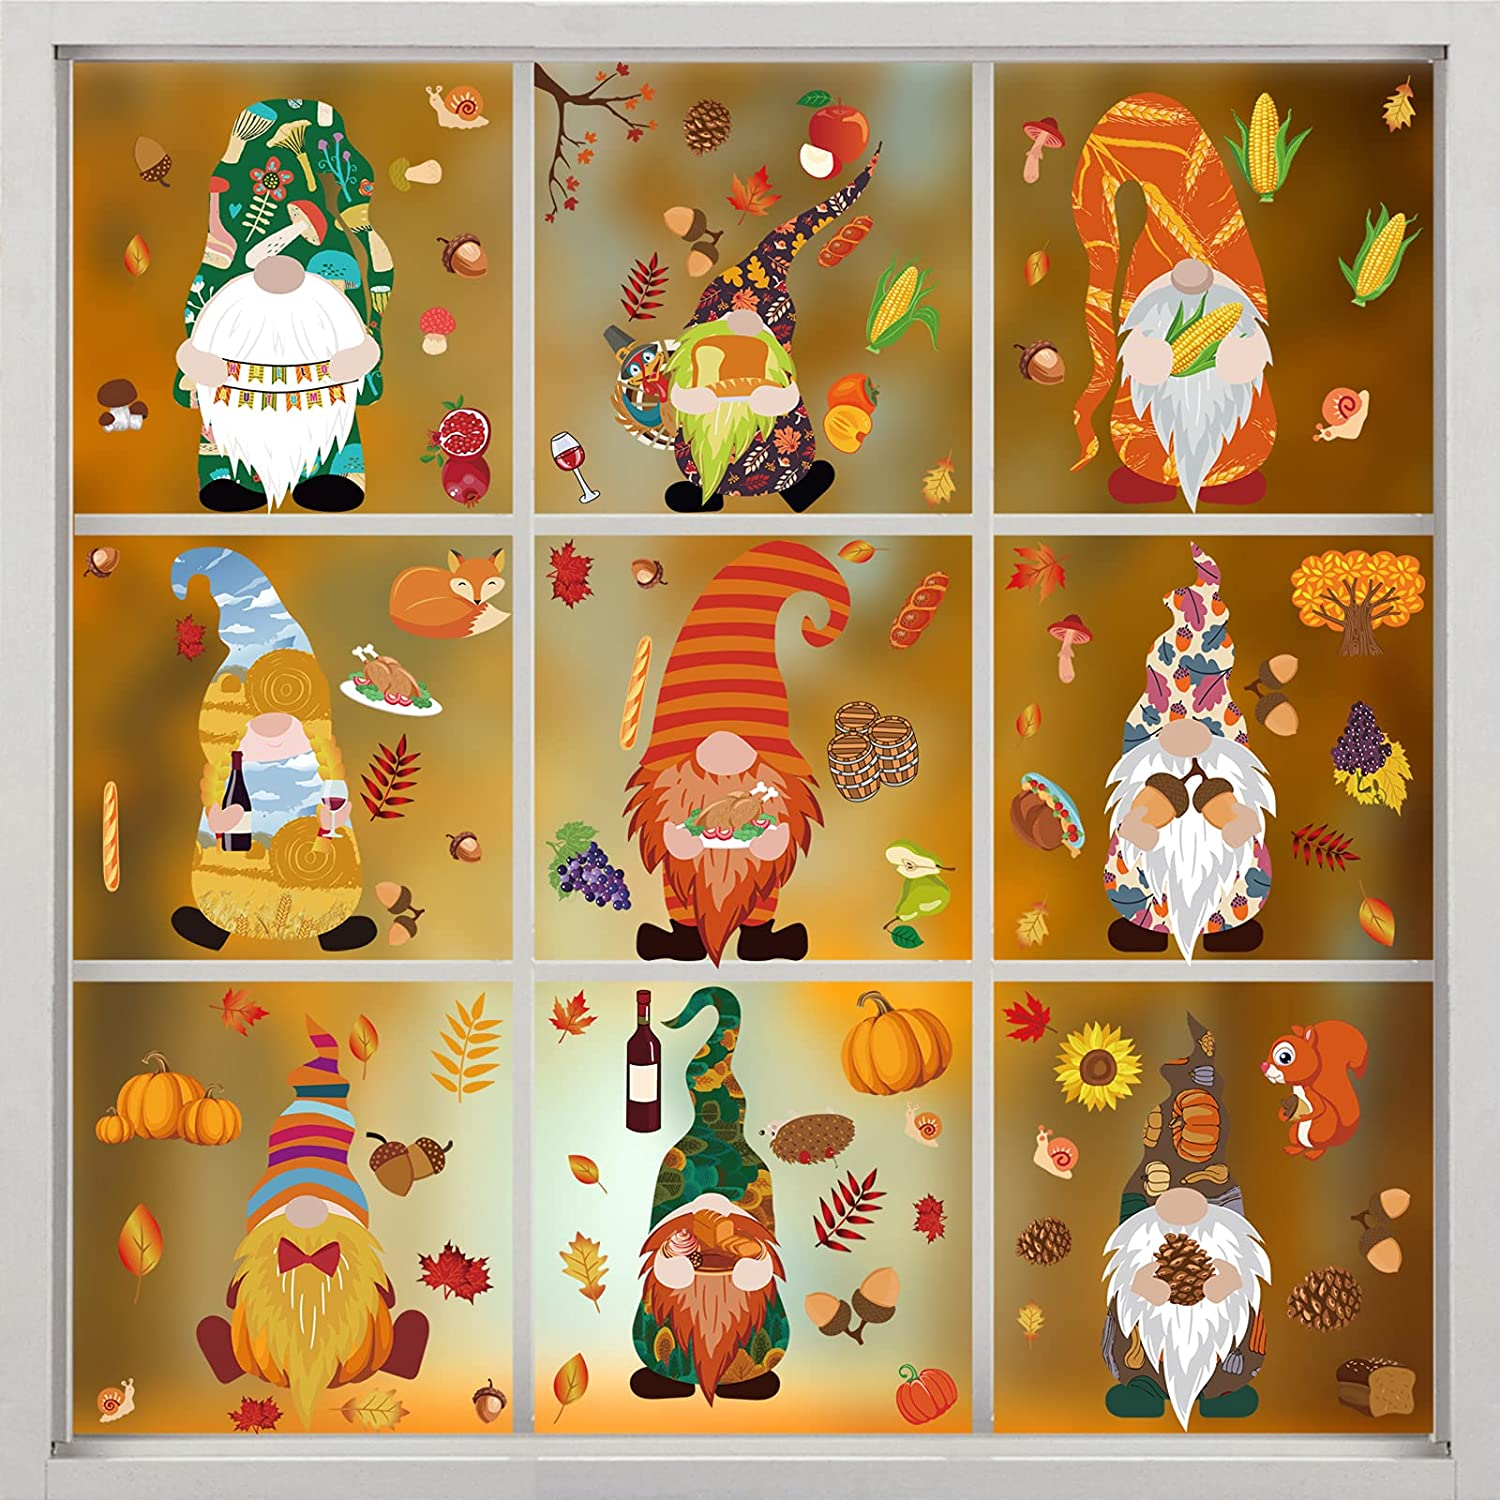 9 Sheets Fall Max 85% OFF Dedication Gnome Window Clings Glass for Leaves Turkey Maple